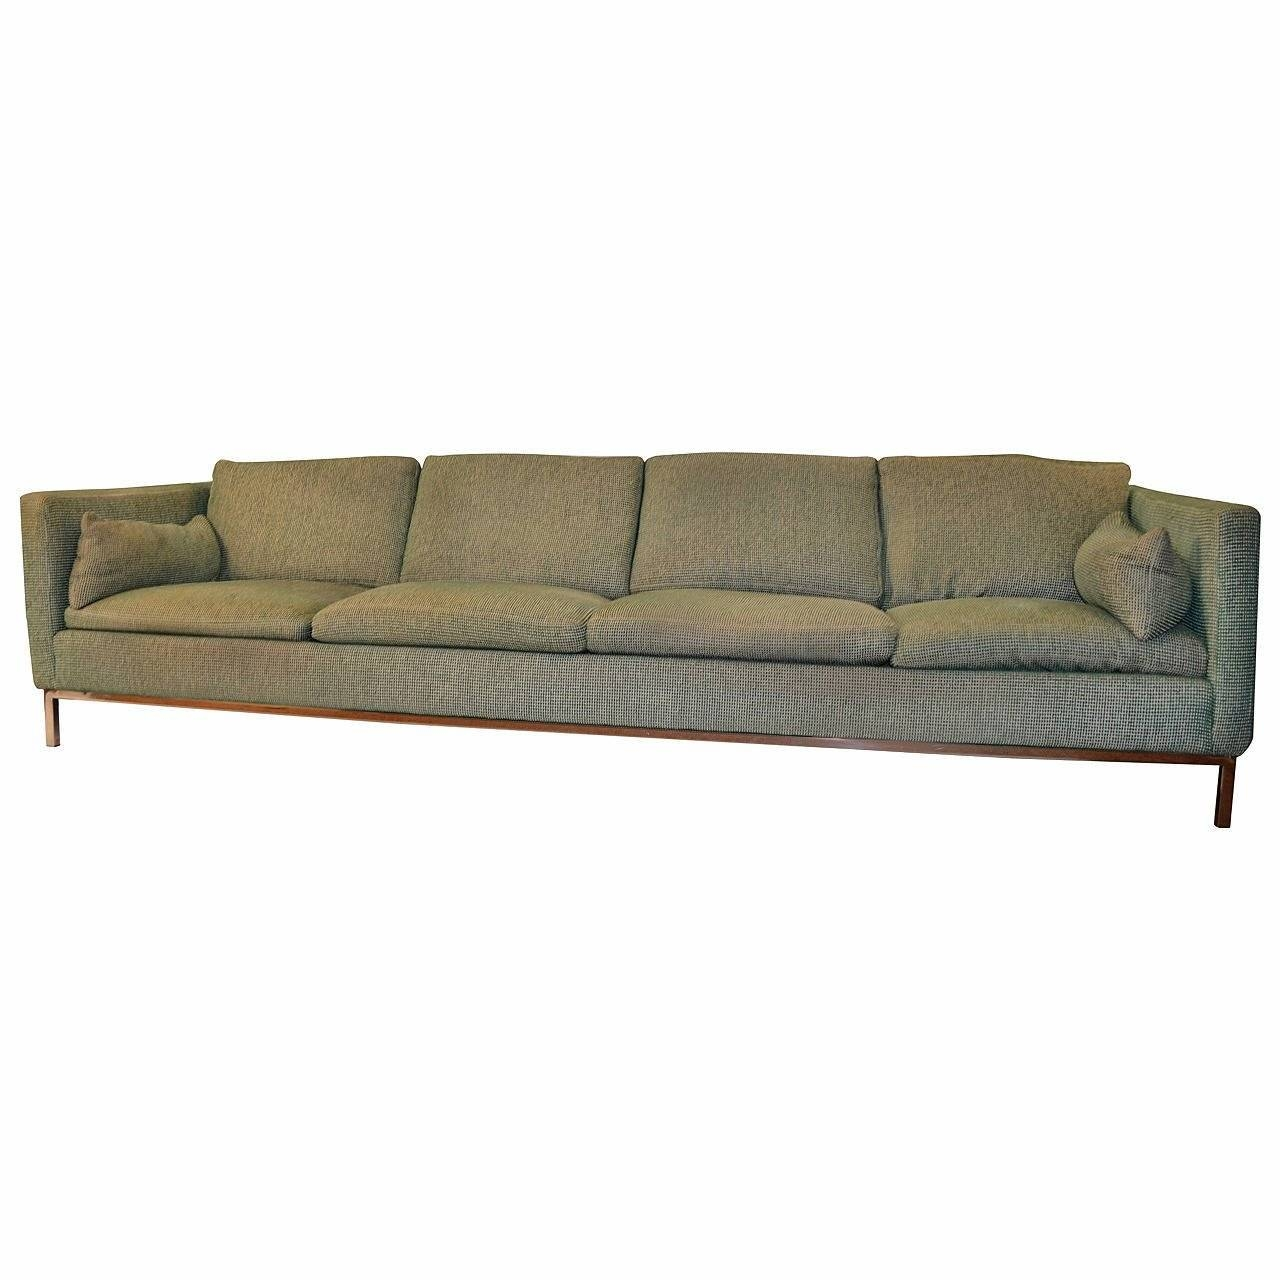 Florence Knoll Style Sofasteelcase At 1stdibs For Florence Knoll Style Sofas (View 17 of 25)